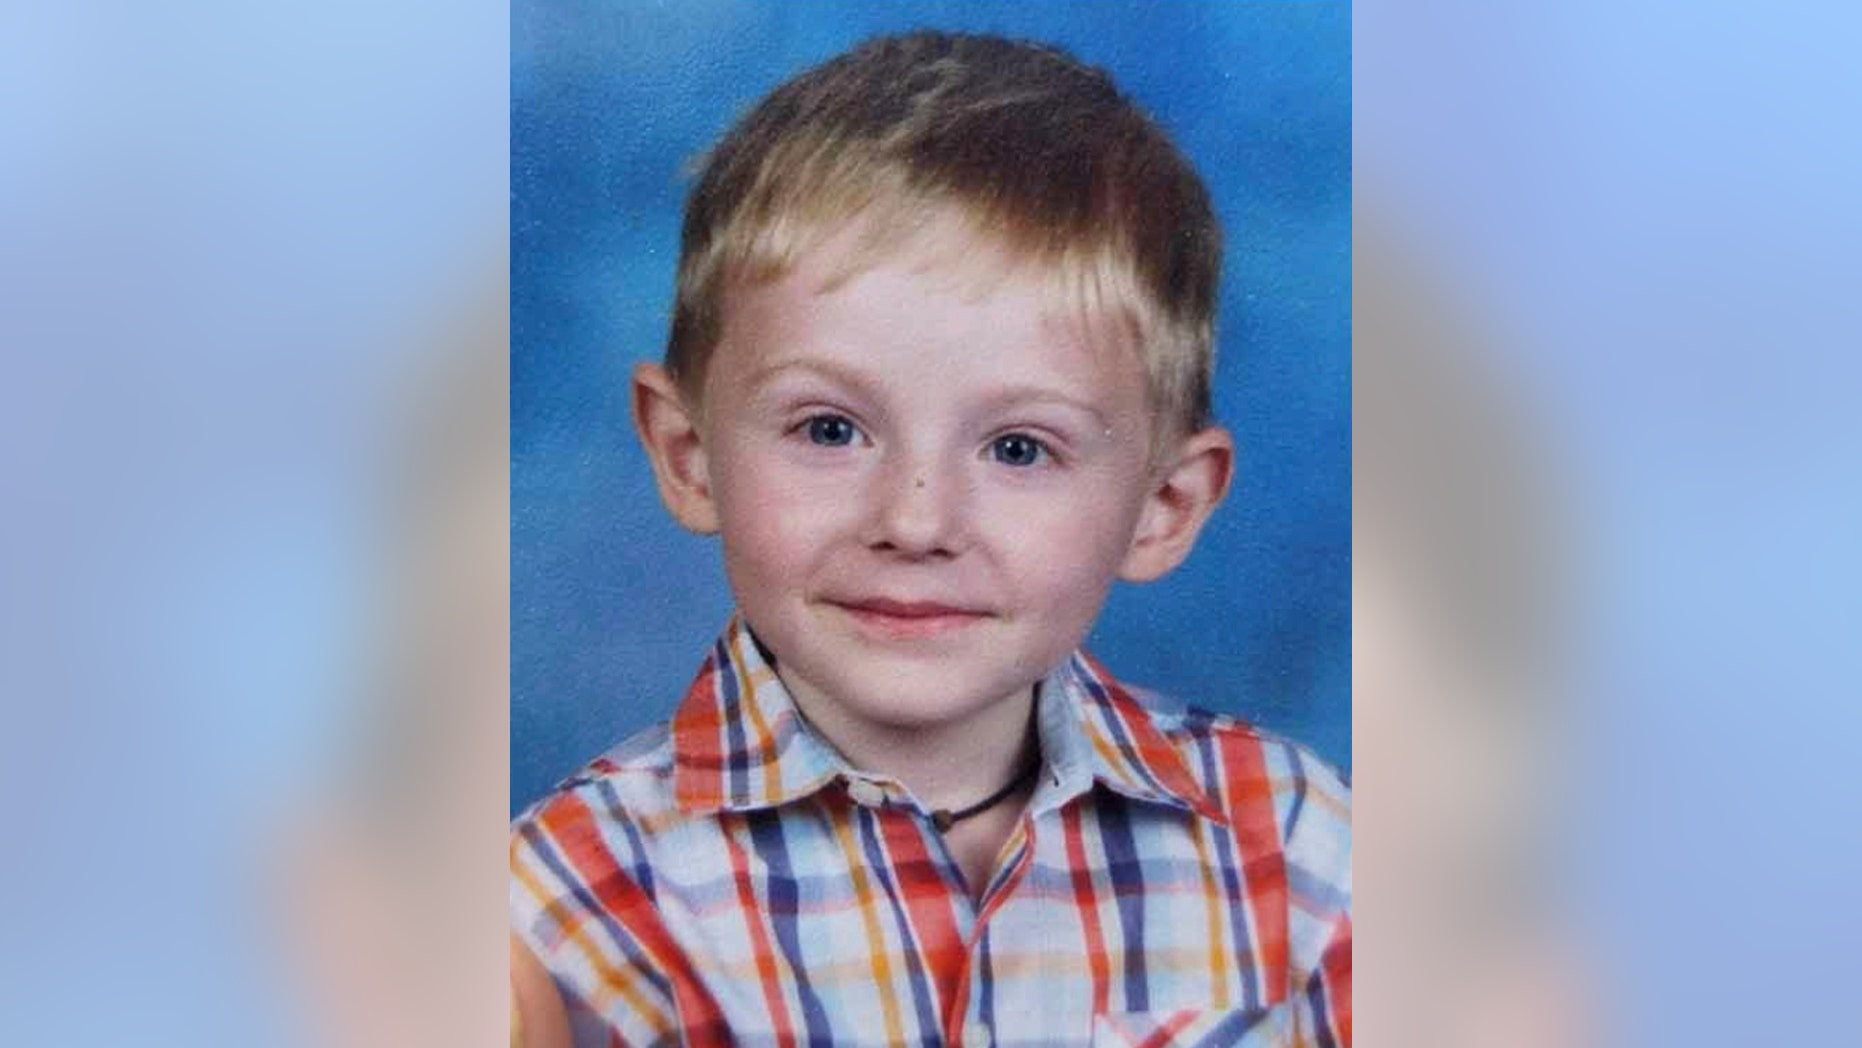 Maddox Ritch died of accidental drowning, according to an autopsy. (FBI via AP, File)